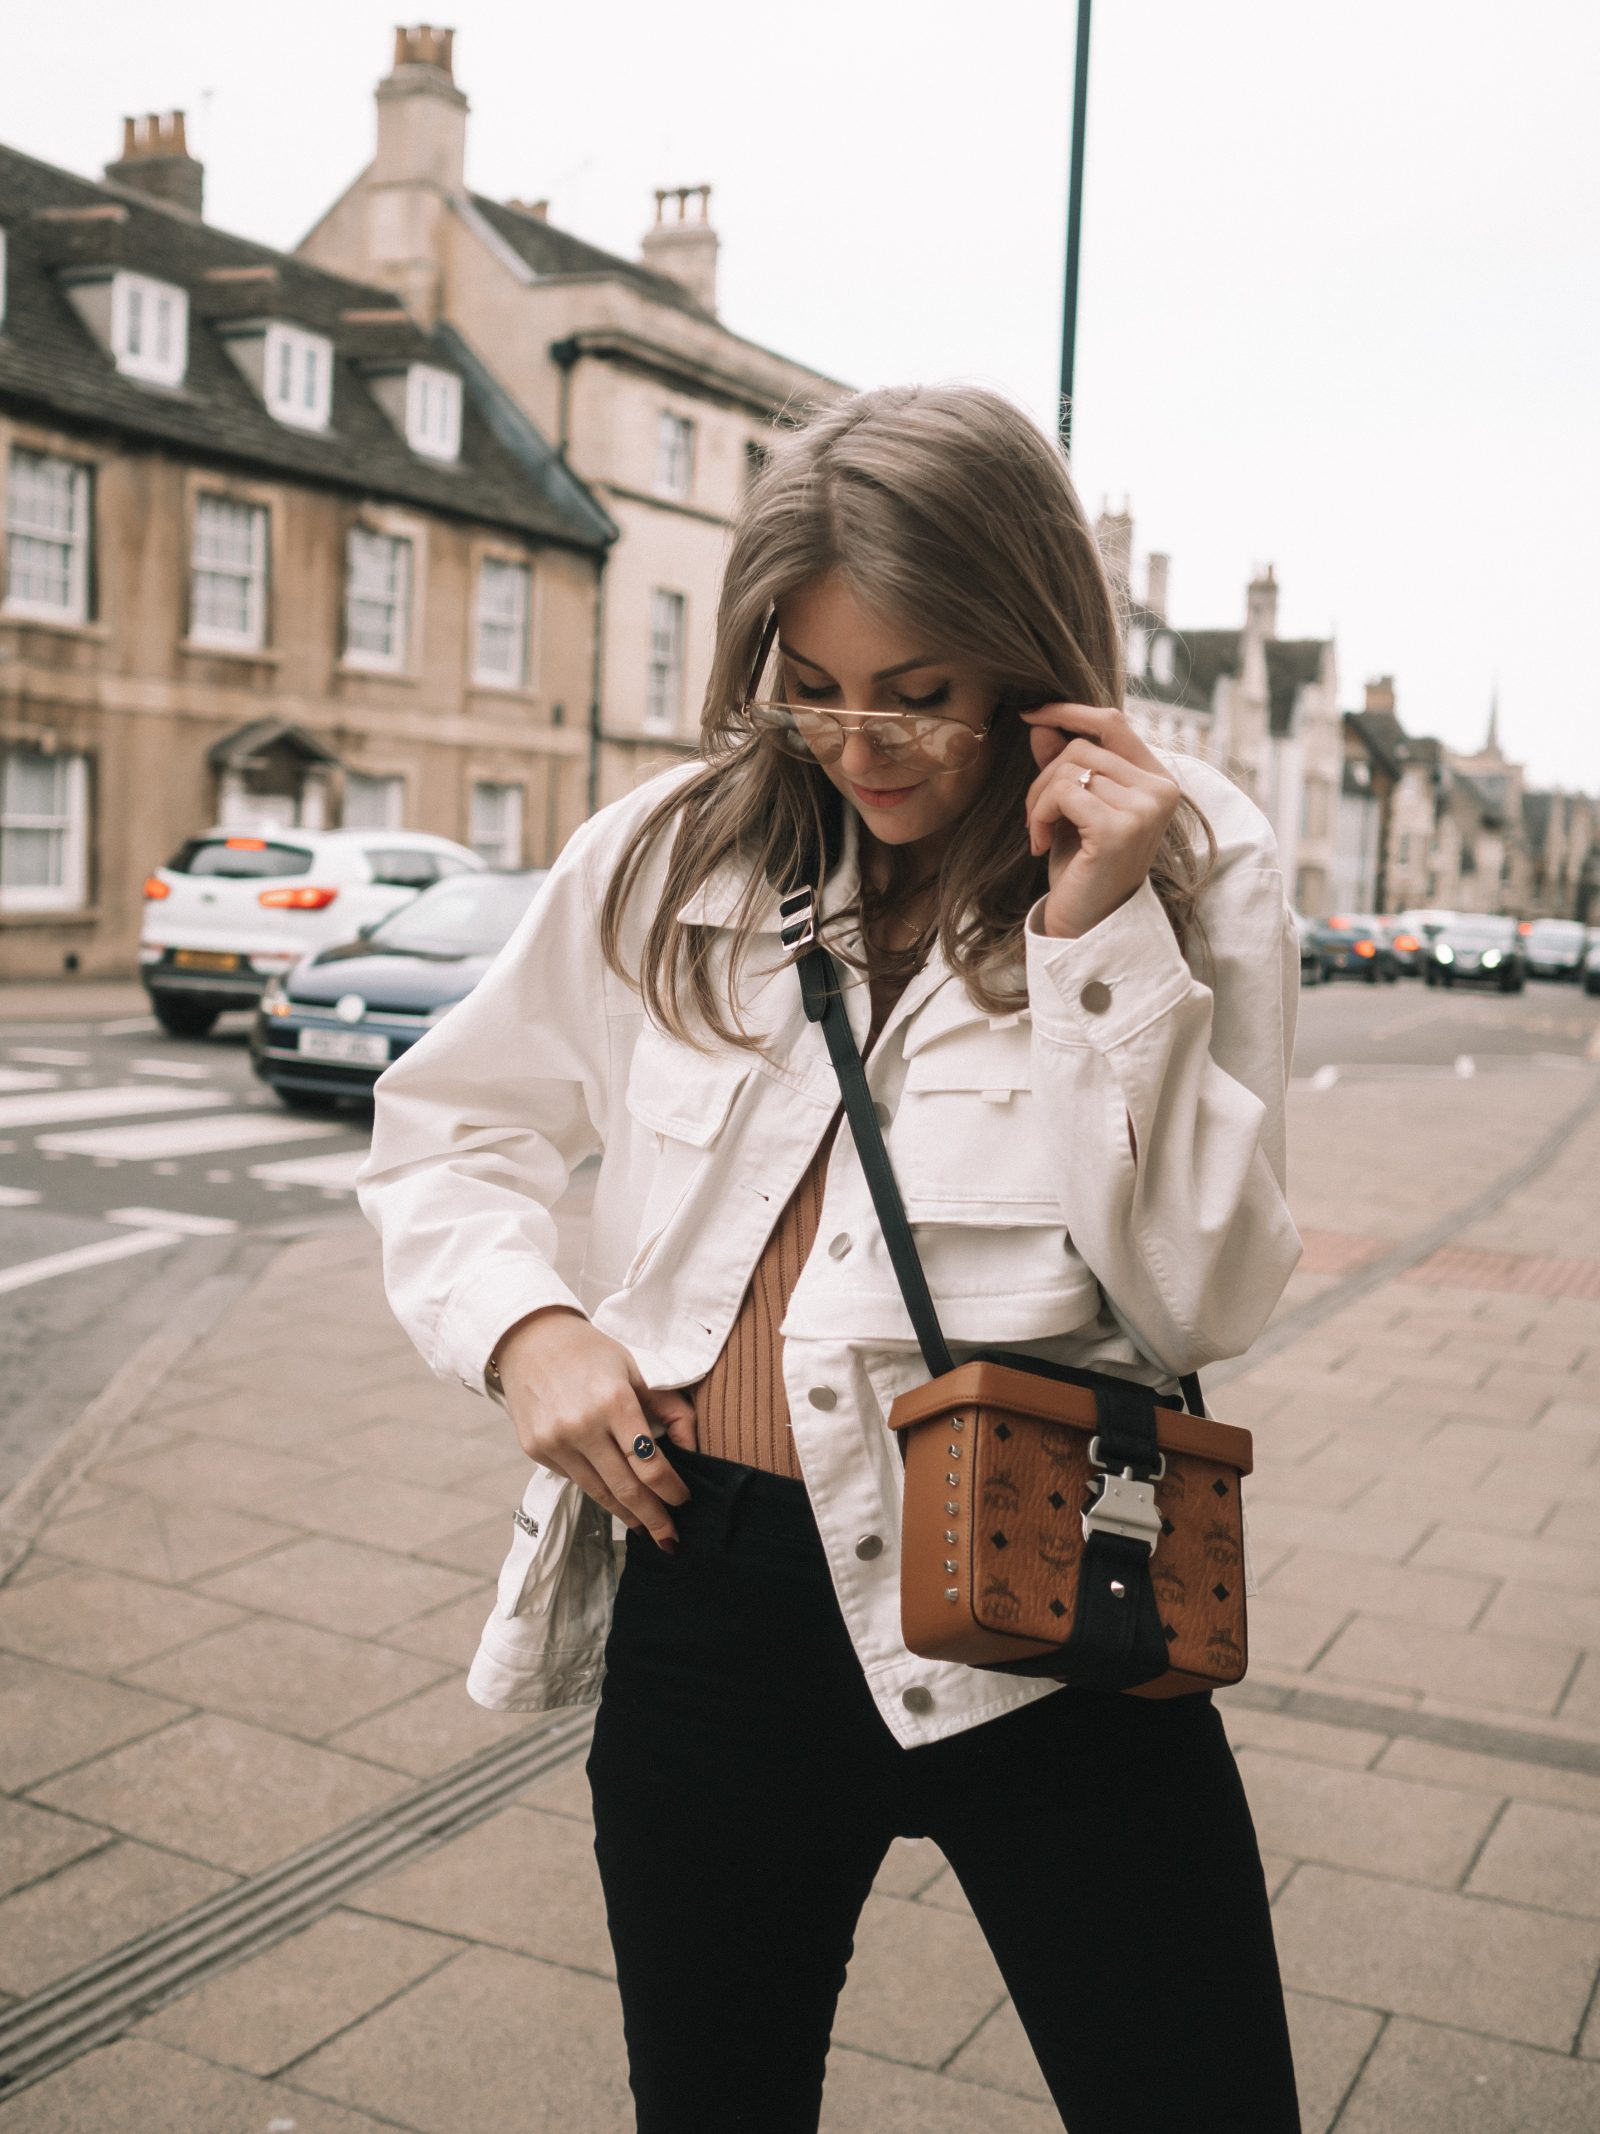 Sinead Crowe Styling the Spring 2019 Utility Trend in this White Cargo Jacket from & Other Stories